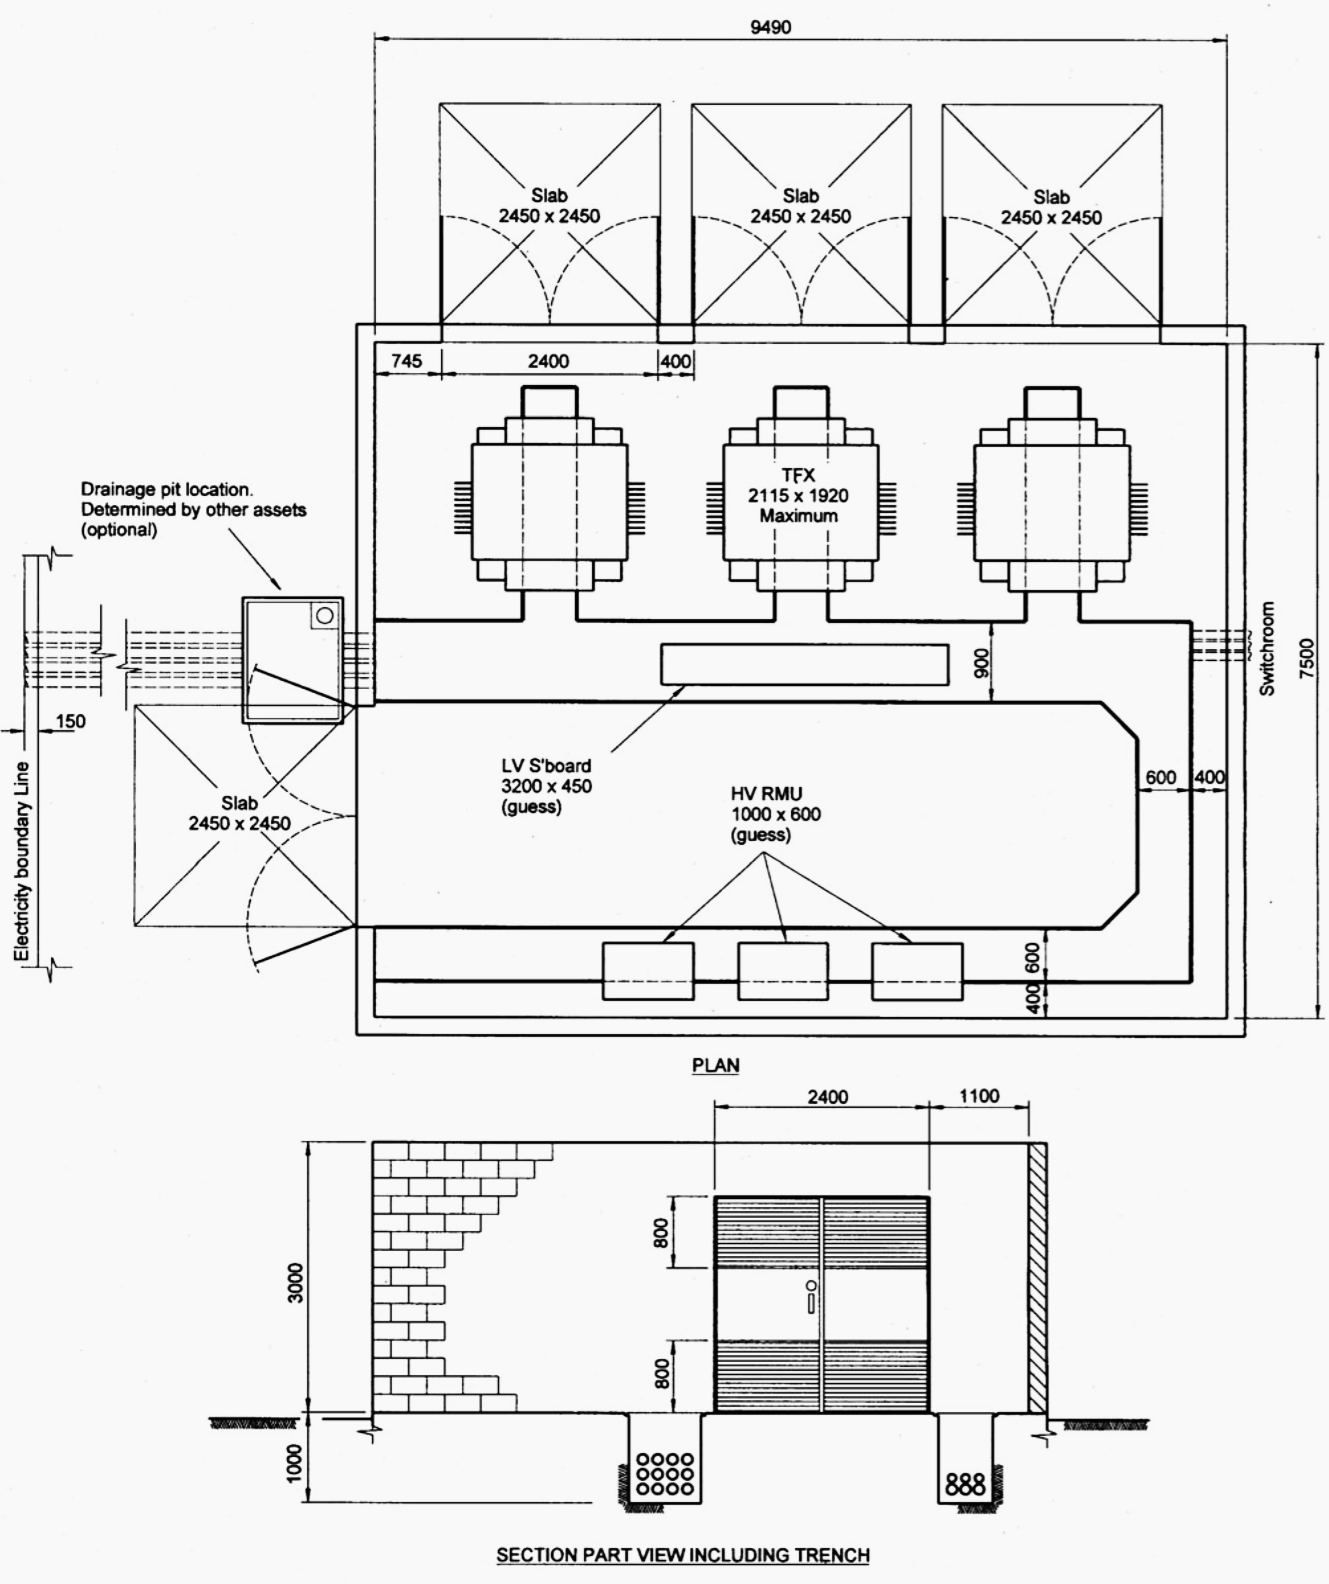 Indoor distribution substation layout with 3 transformers for Substation pdf